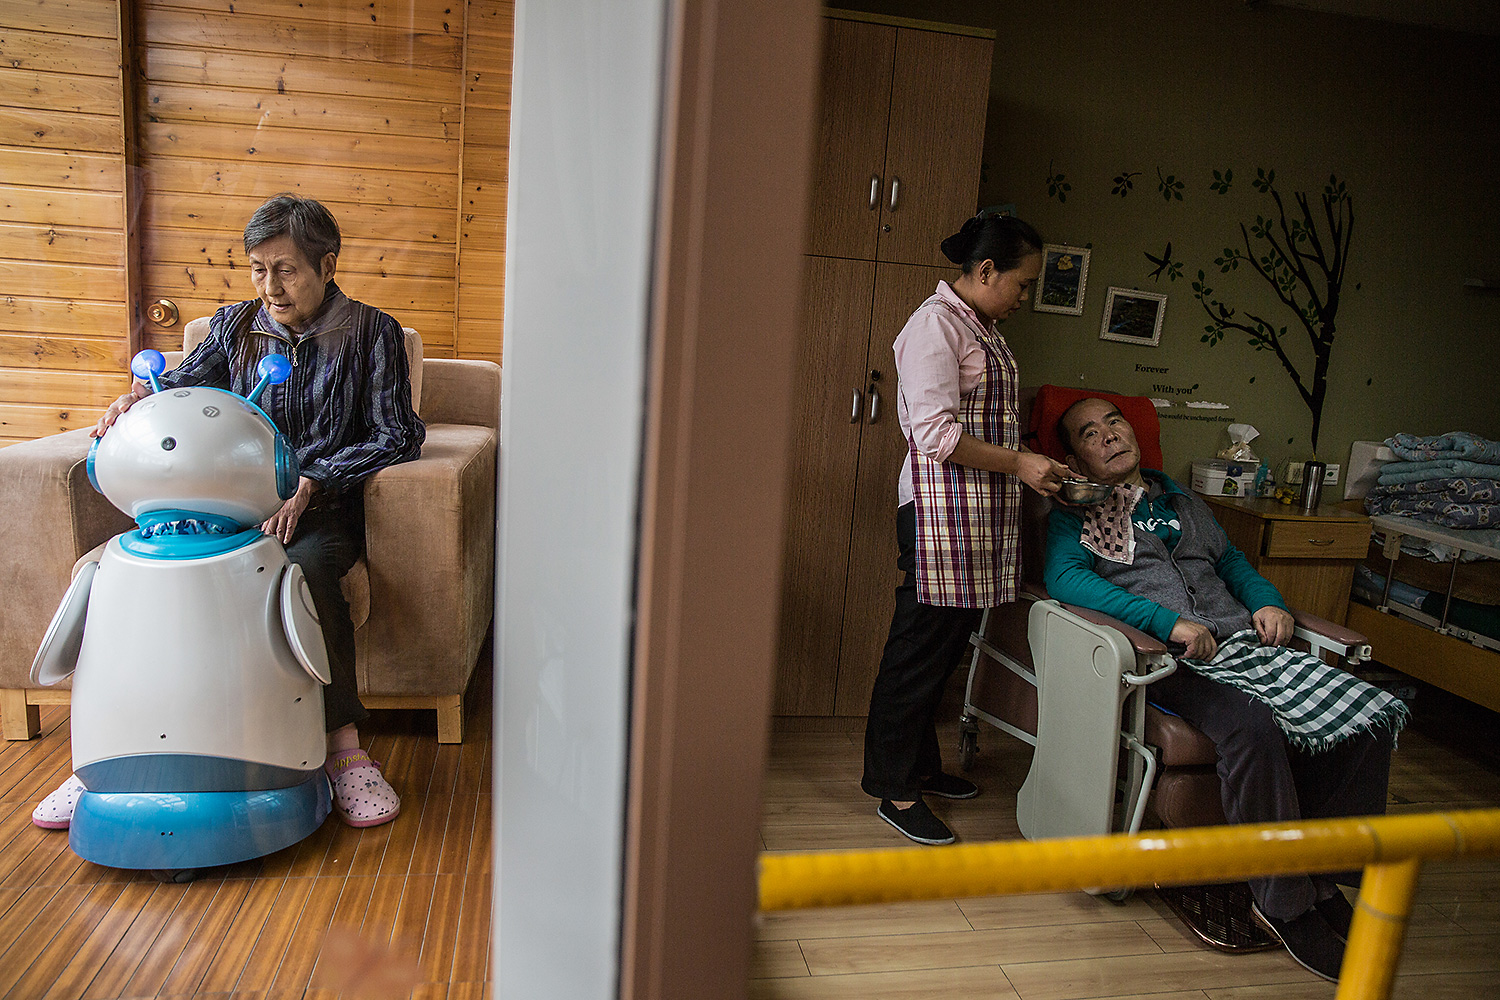 Zhao Qiuying, left, sits with an elder-care robot called Ah Tie, while a staff caregiver looks after an elderly man in an adjacent bedroom at the Hangzhou Social Welfare Center, Zhejiang province. Photo by Chen Ronghui @chenronghui1989